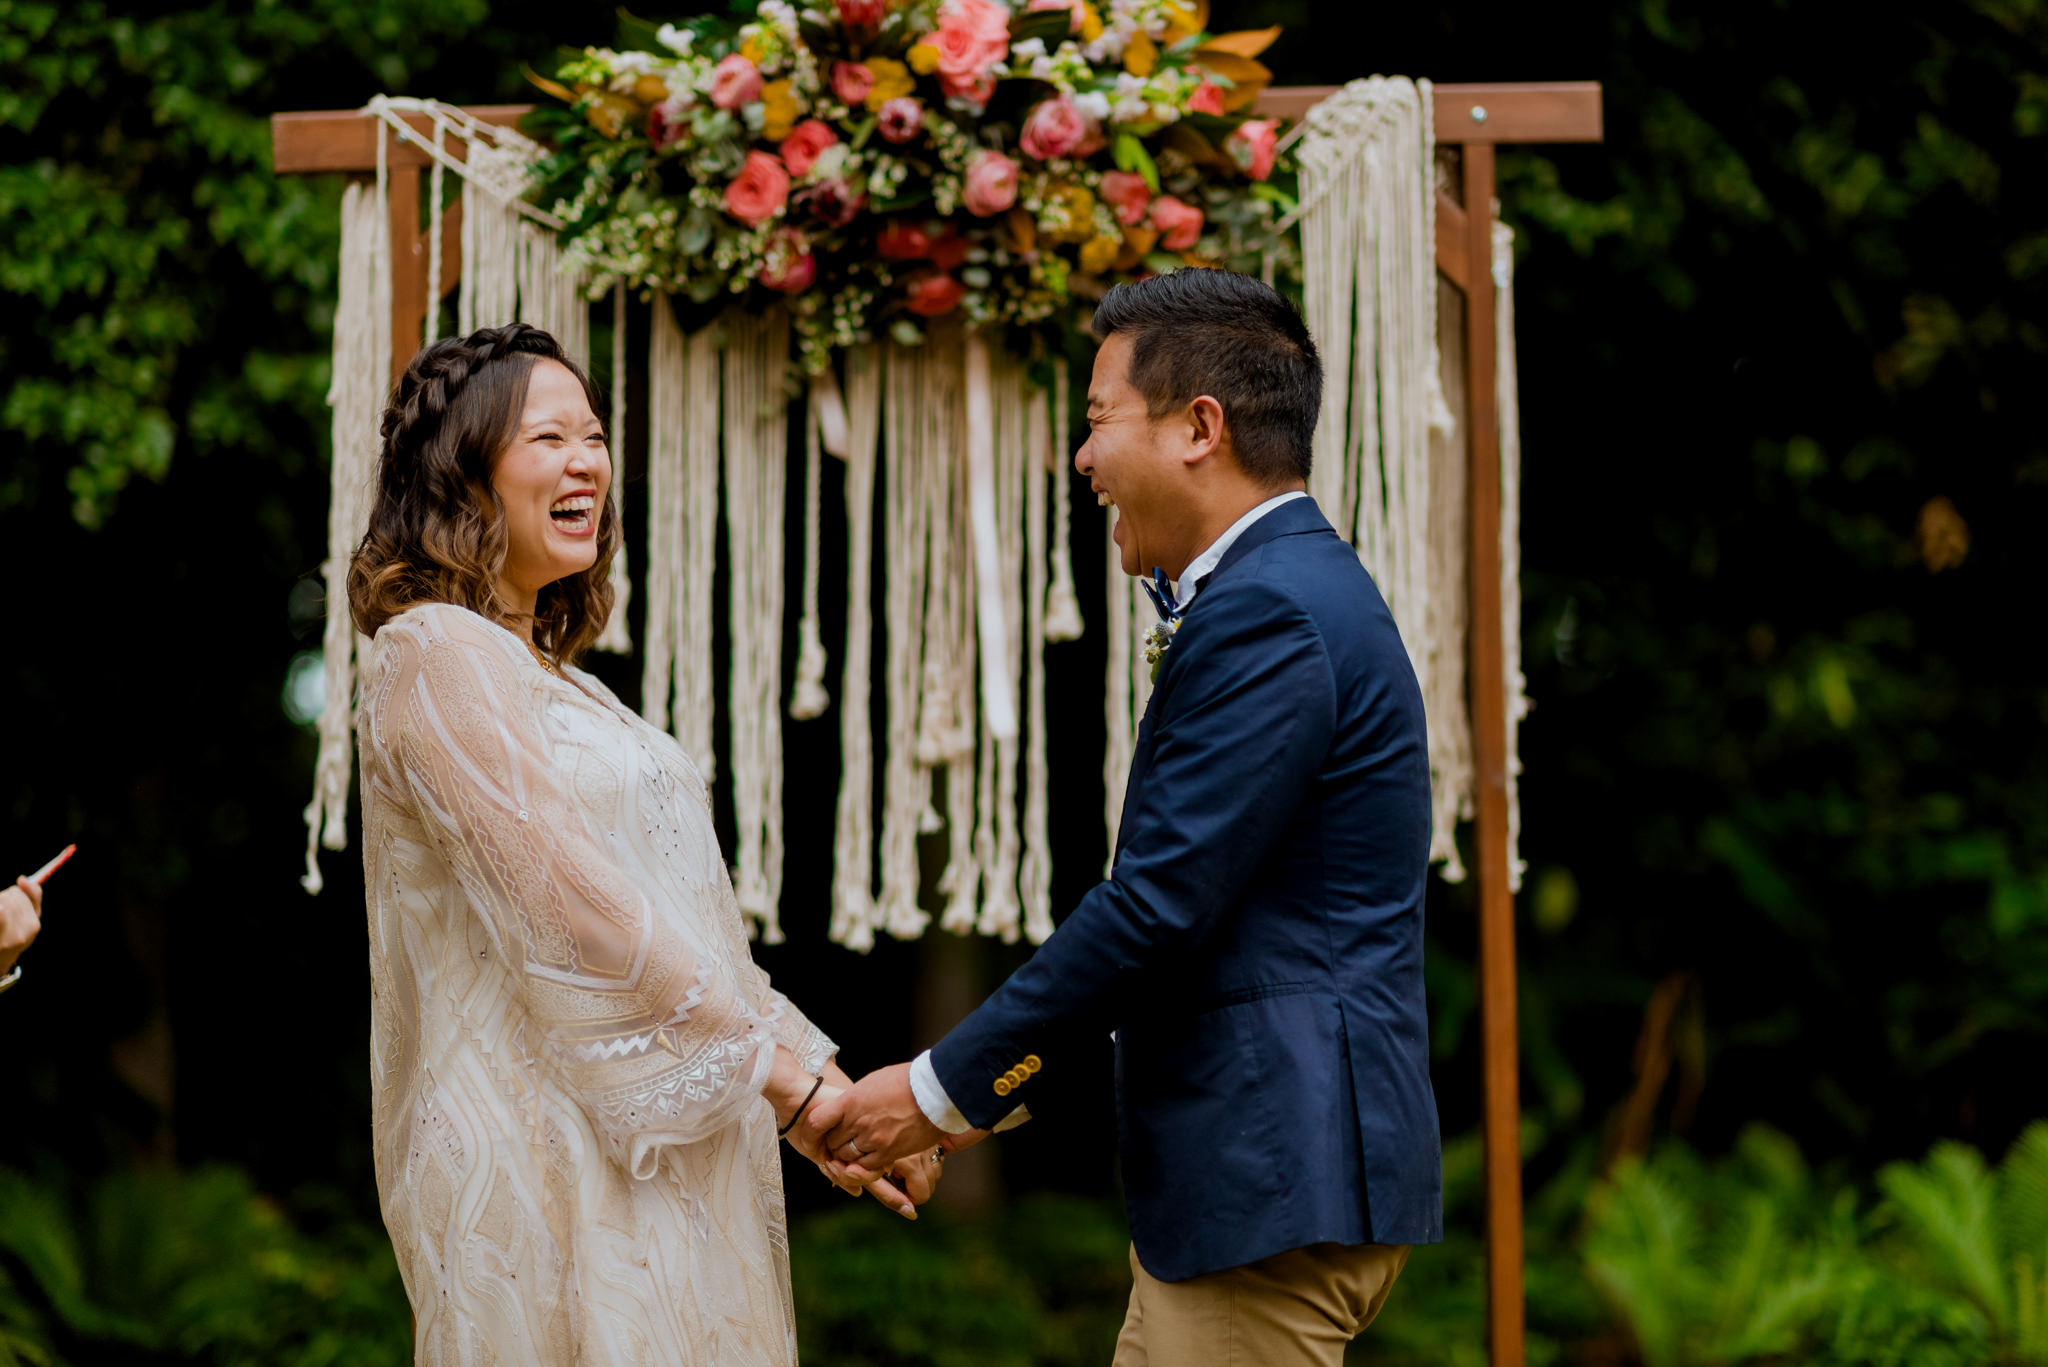 An asian bride and groom hold hands and laugh during their wedding ceremony